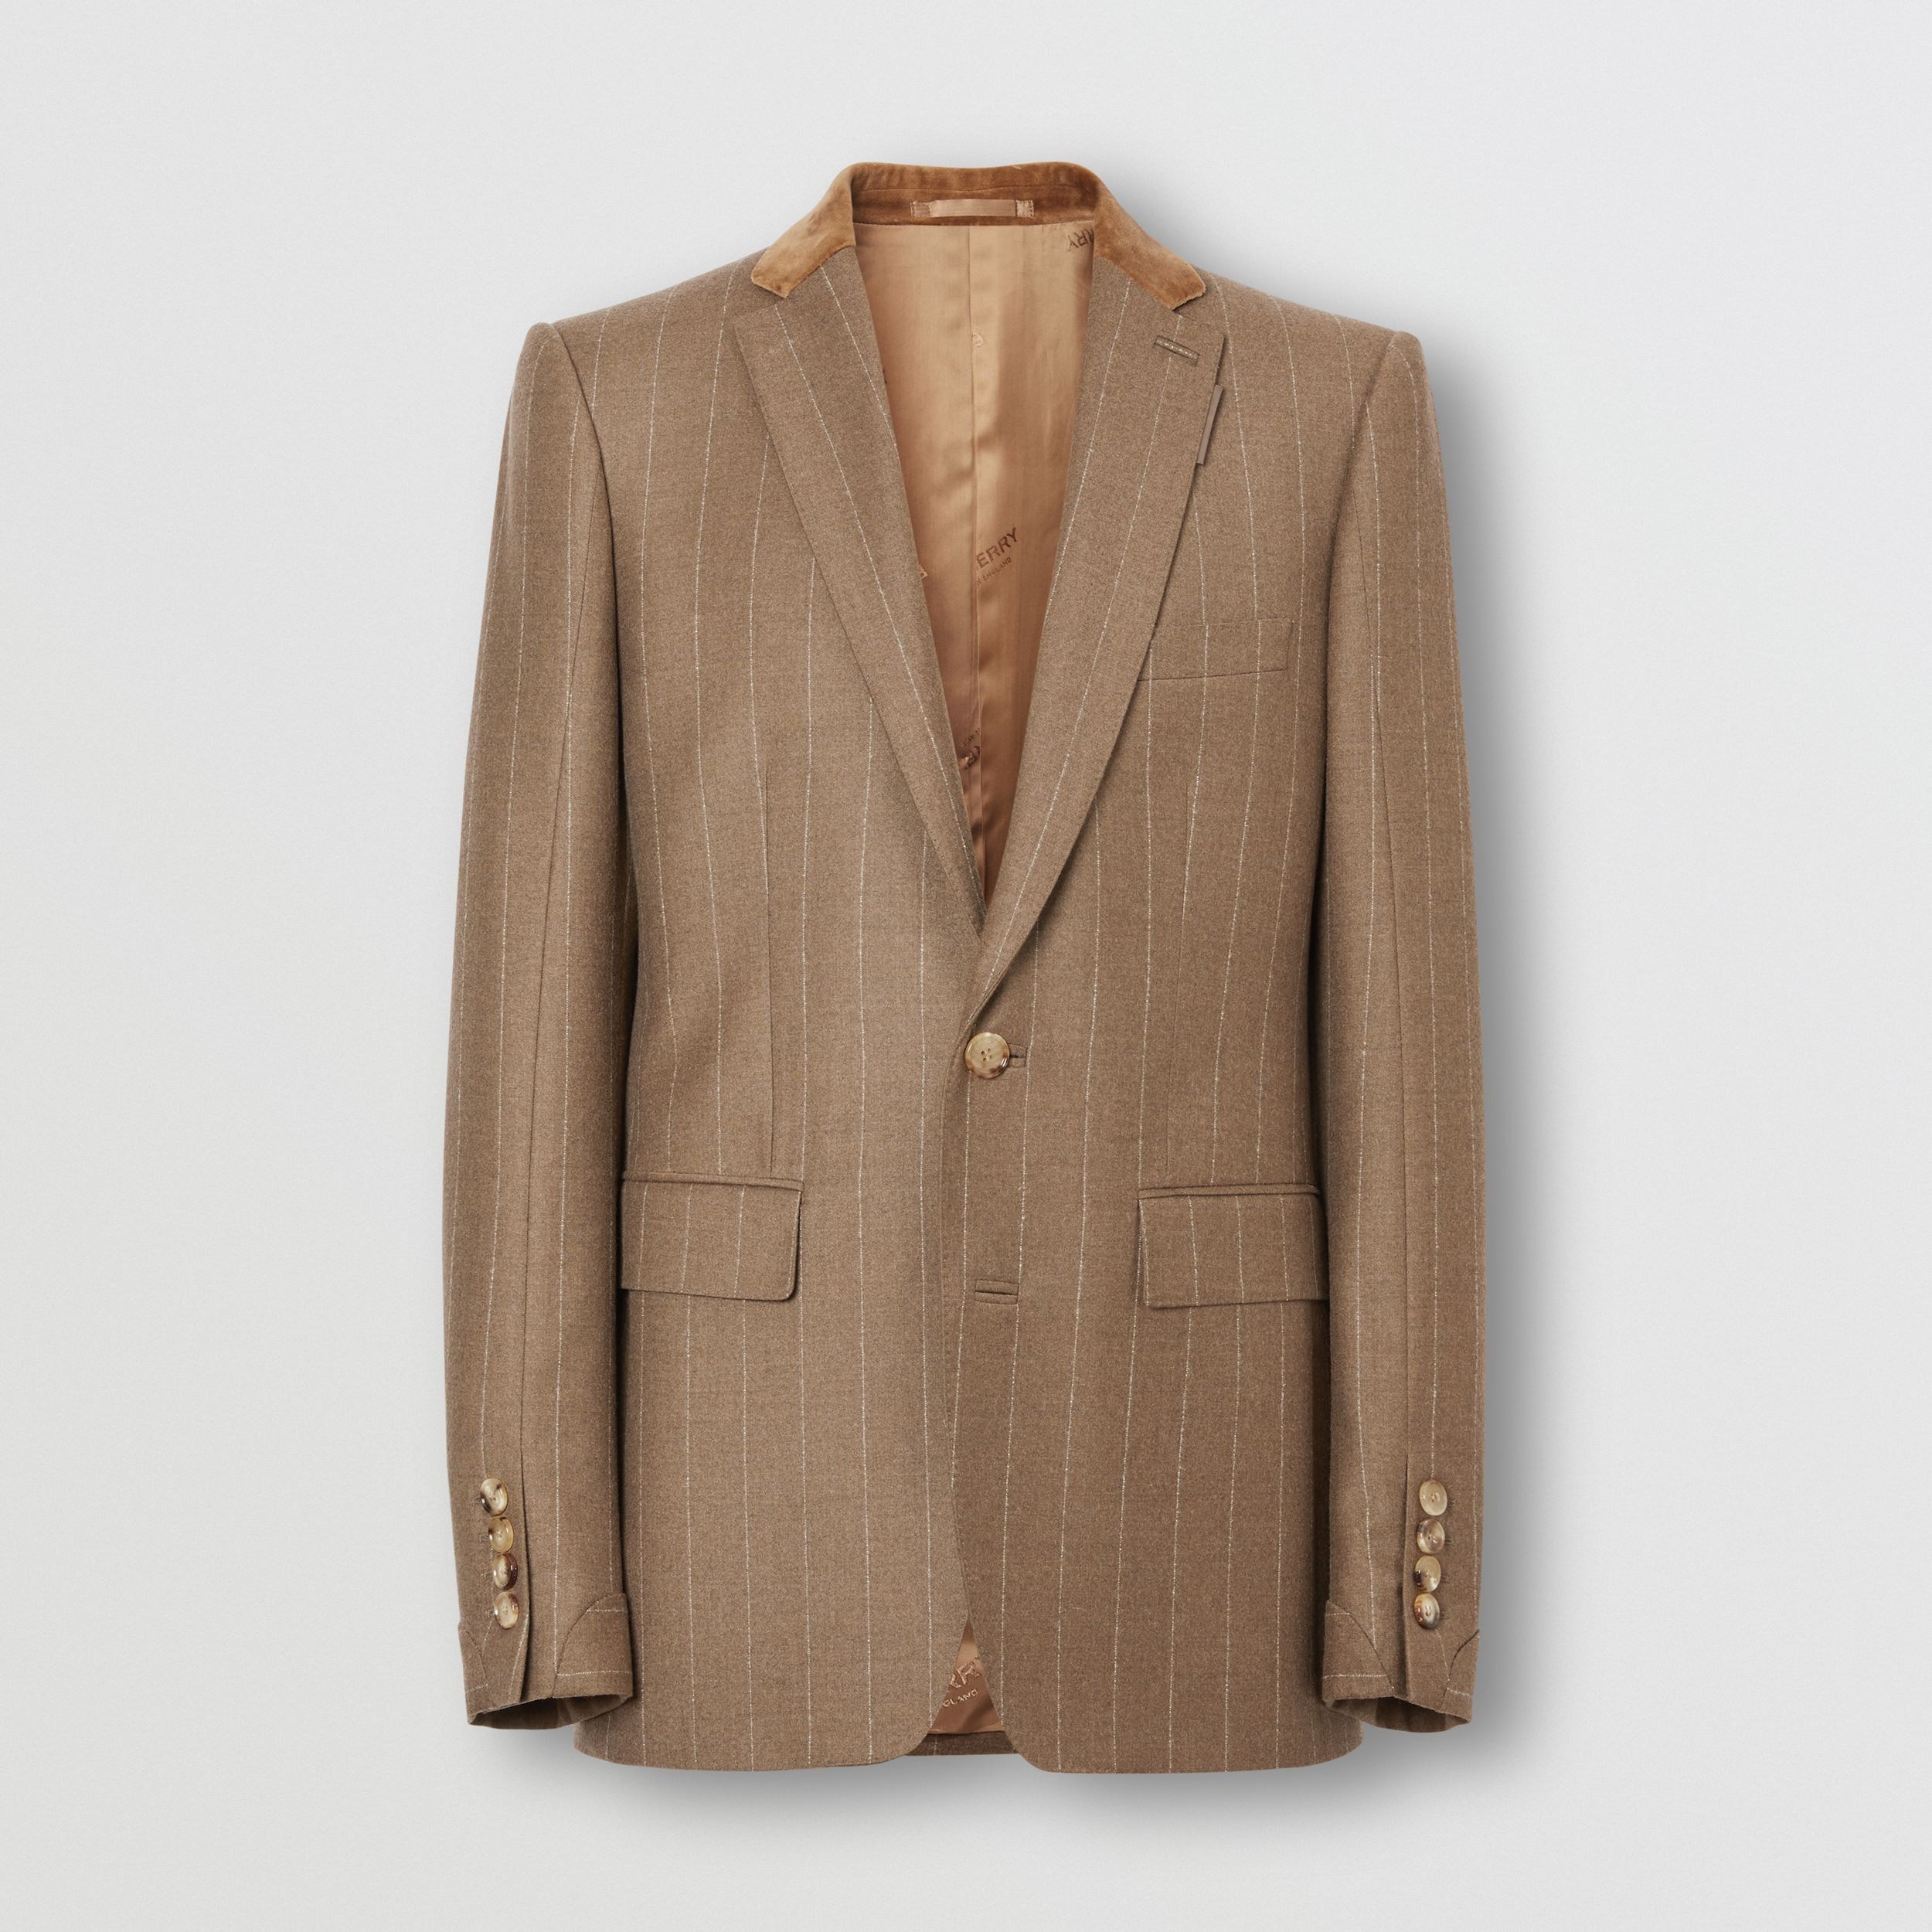 Classic Fit Velvet Trim Wool Cashmere Tailored Jacket in Dark Tan - Men | Burberry - 4